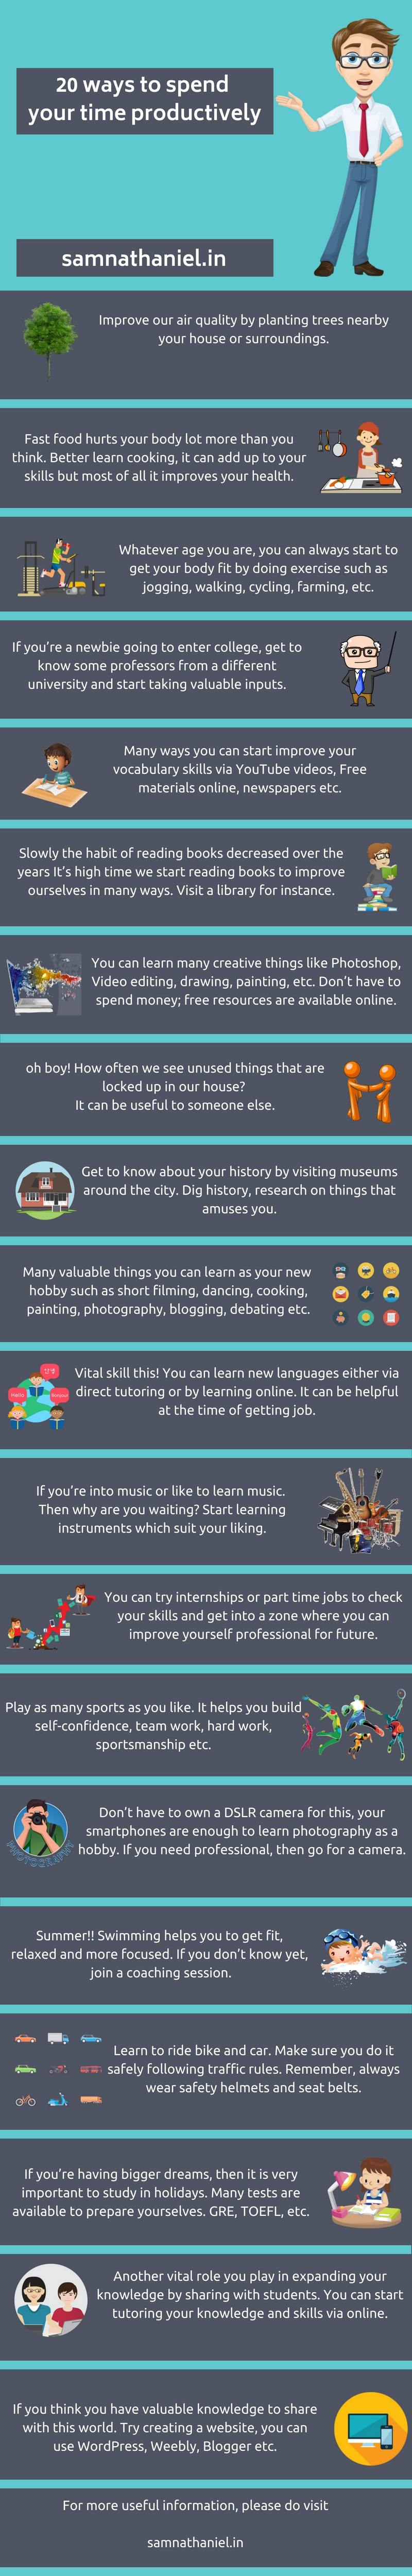 20 Ways To Spend Your Time Productively - Sam Nathaniel Infographic